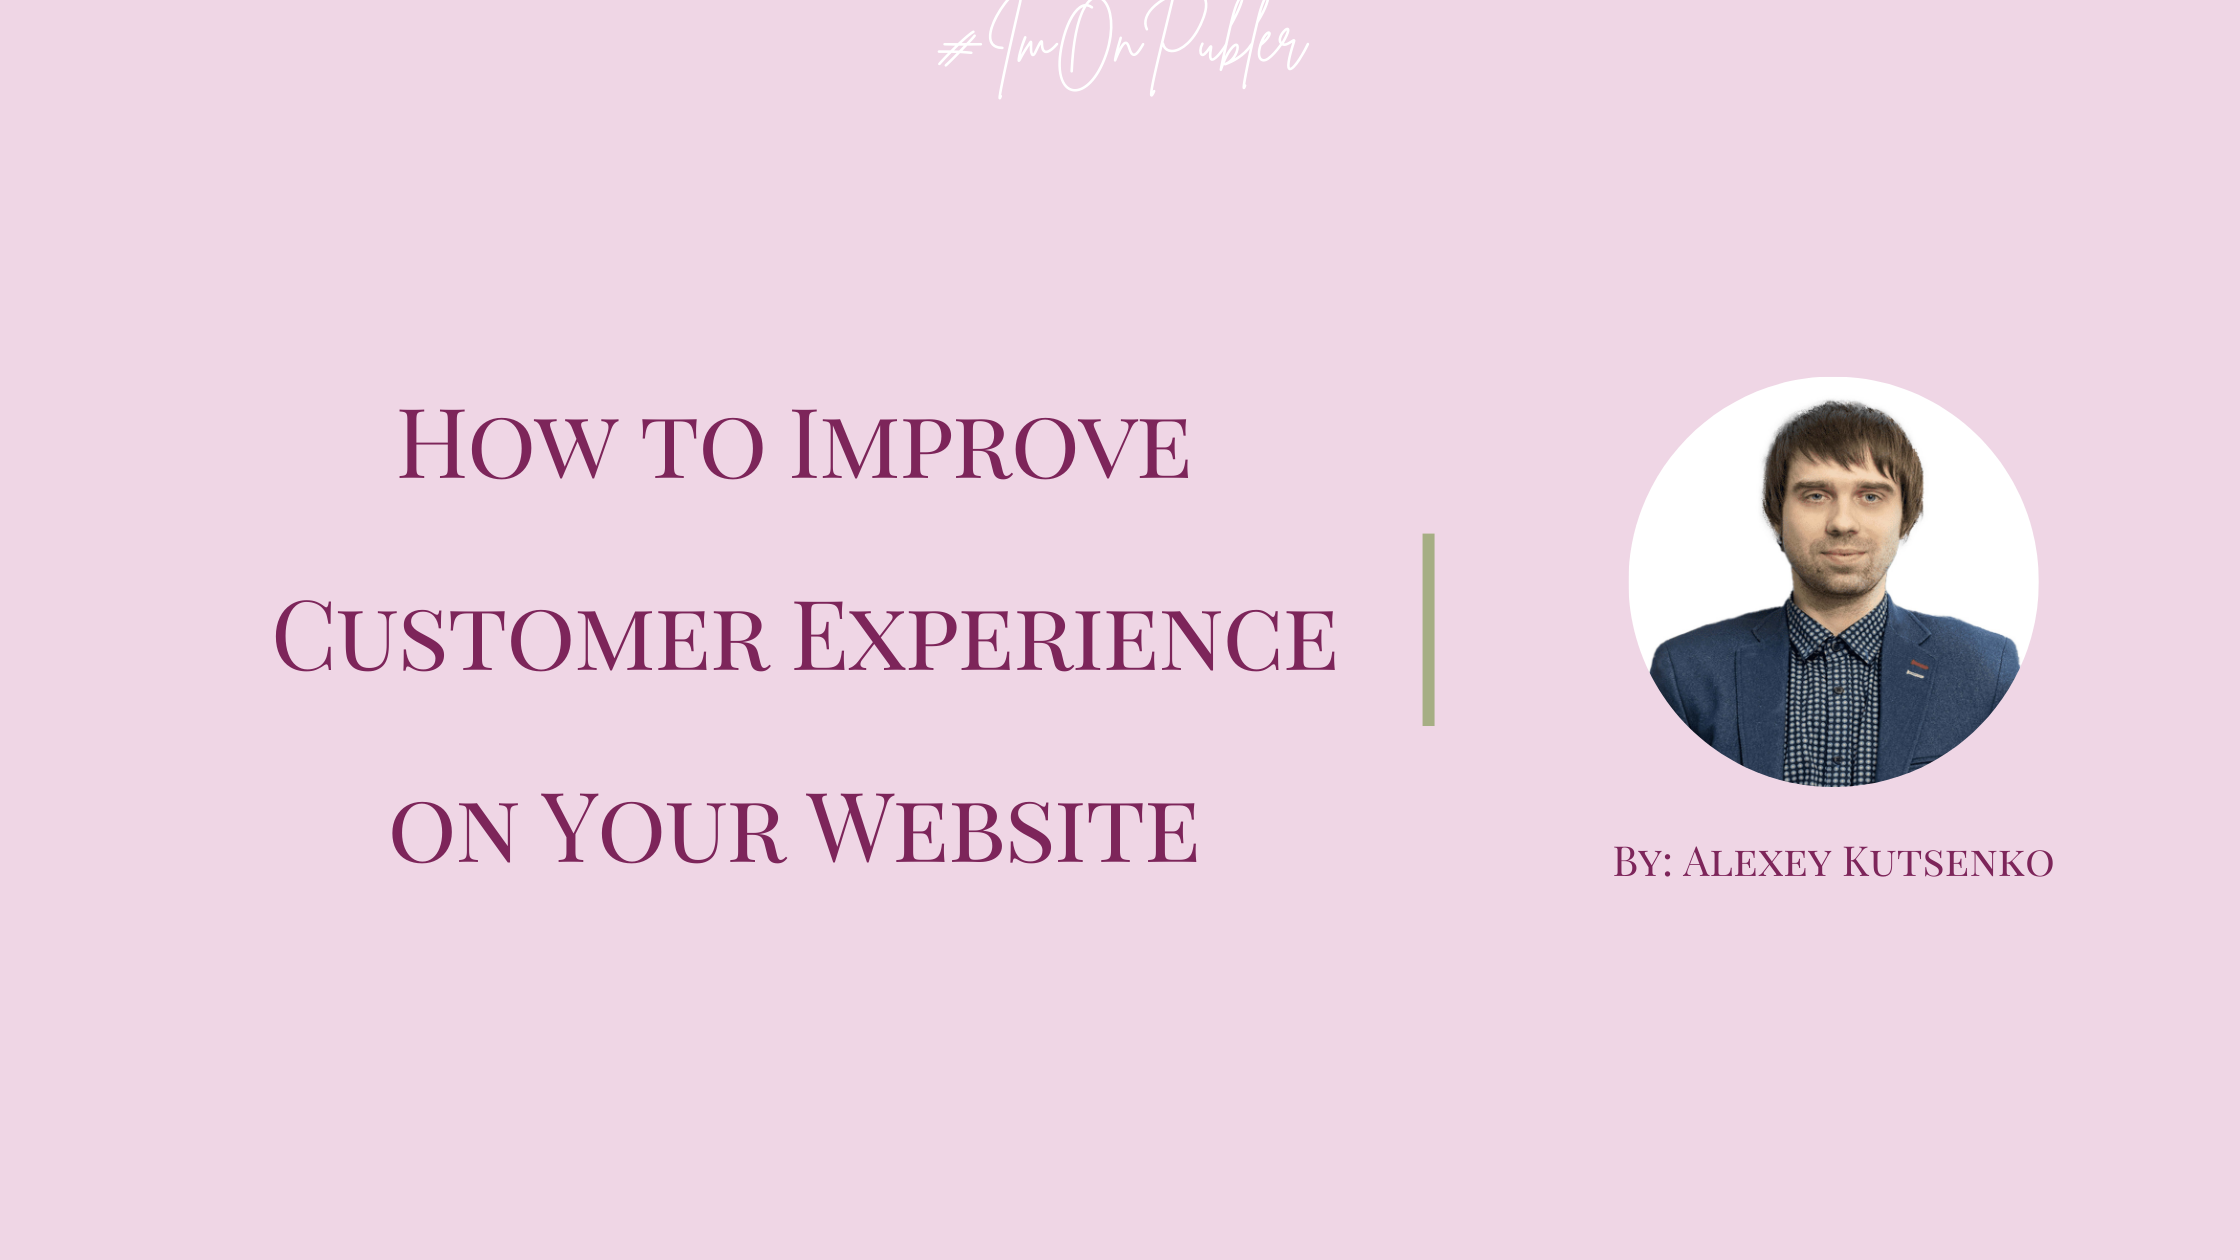 How to Improve Customer Experience on Your Website by Alexey Kutsenko